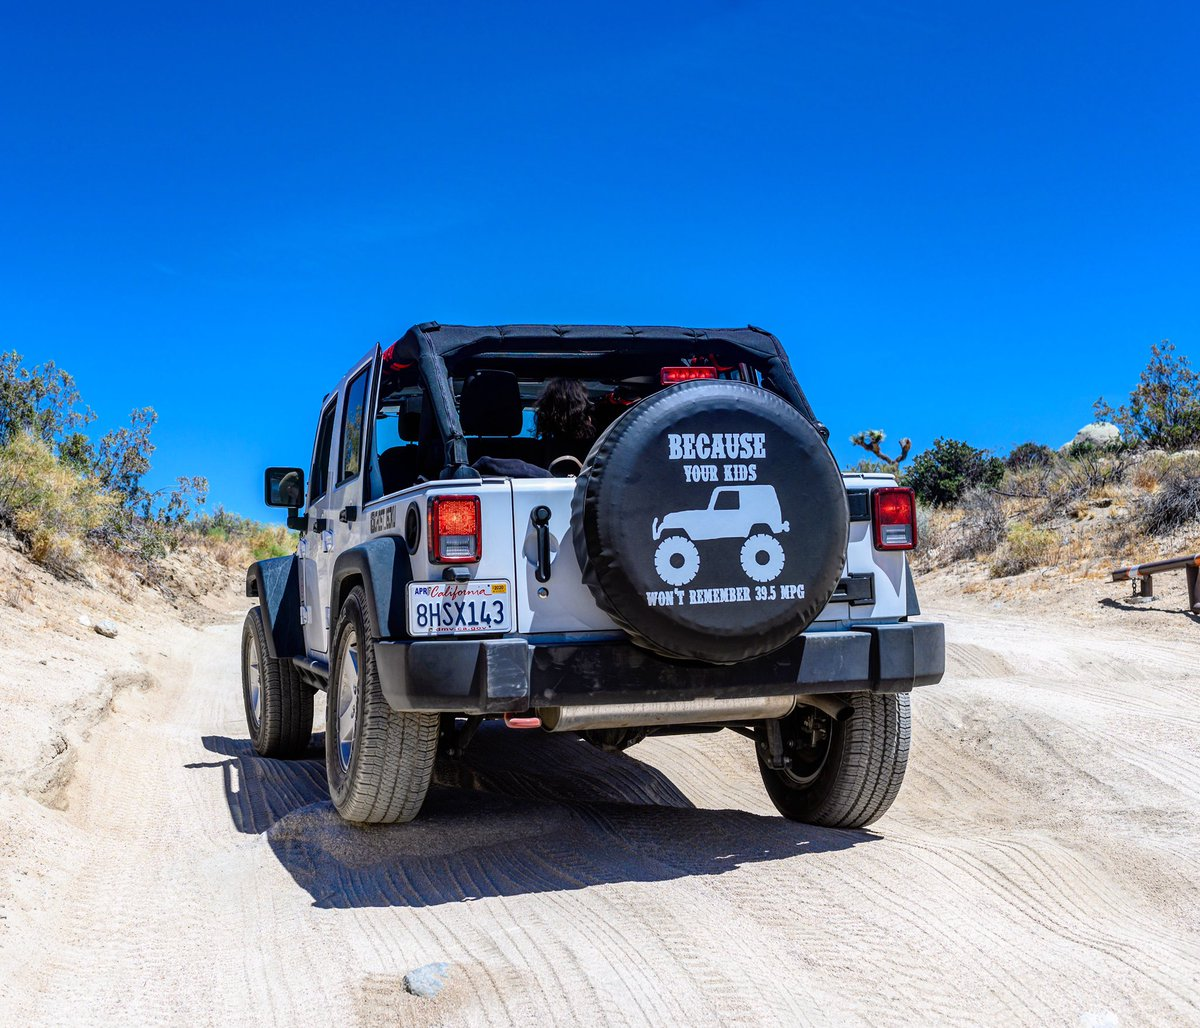 Tushie Tuesdays!!!! This is how a Jeep scratch's her left cheek 😁  __O|||||||O__ #TushieTuesday #JoshuaTree #JTree #ExploreMore #JeepNation #JeepBeef #JeepLove #JeepJK #JKUSquad #JeepFamily #ItsAJeepThing #Jeepin